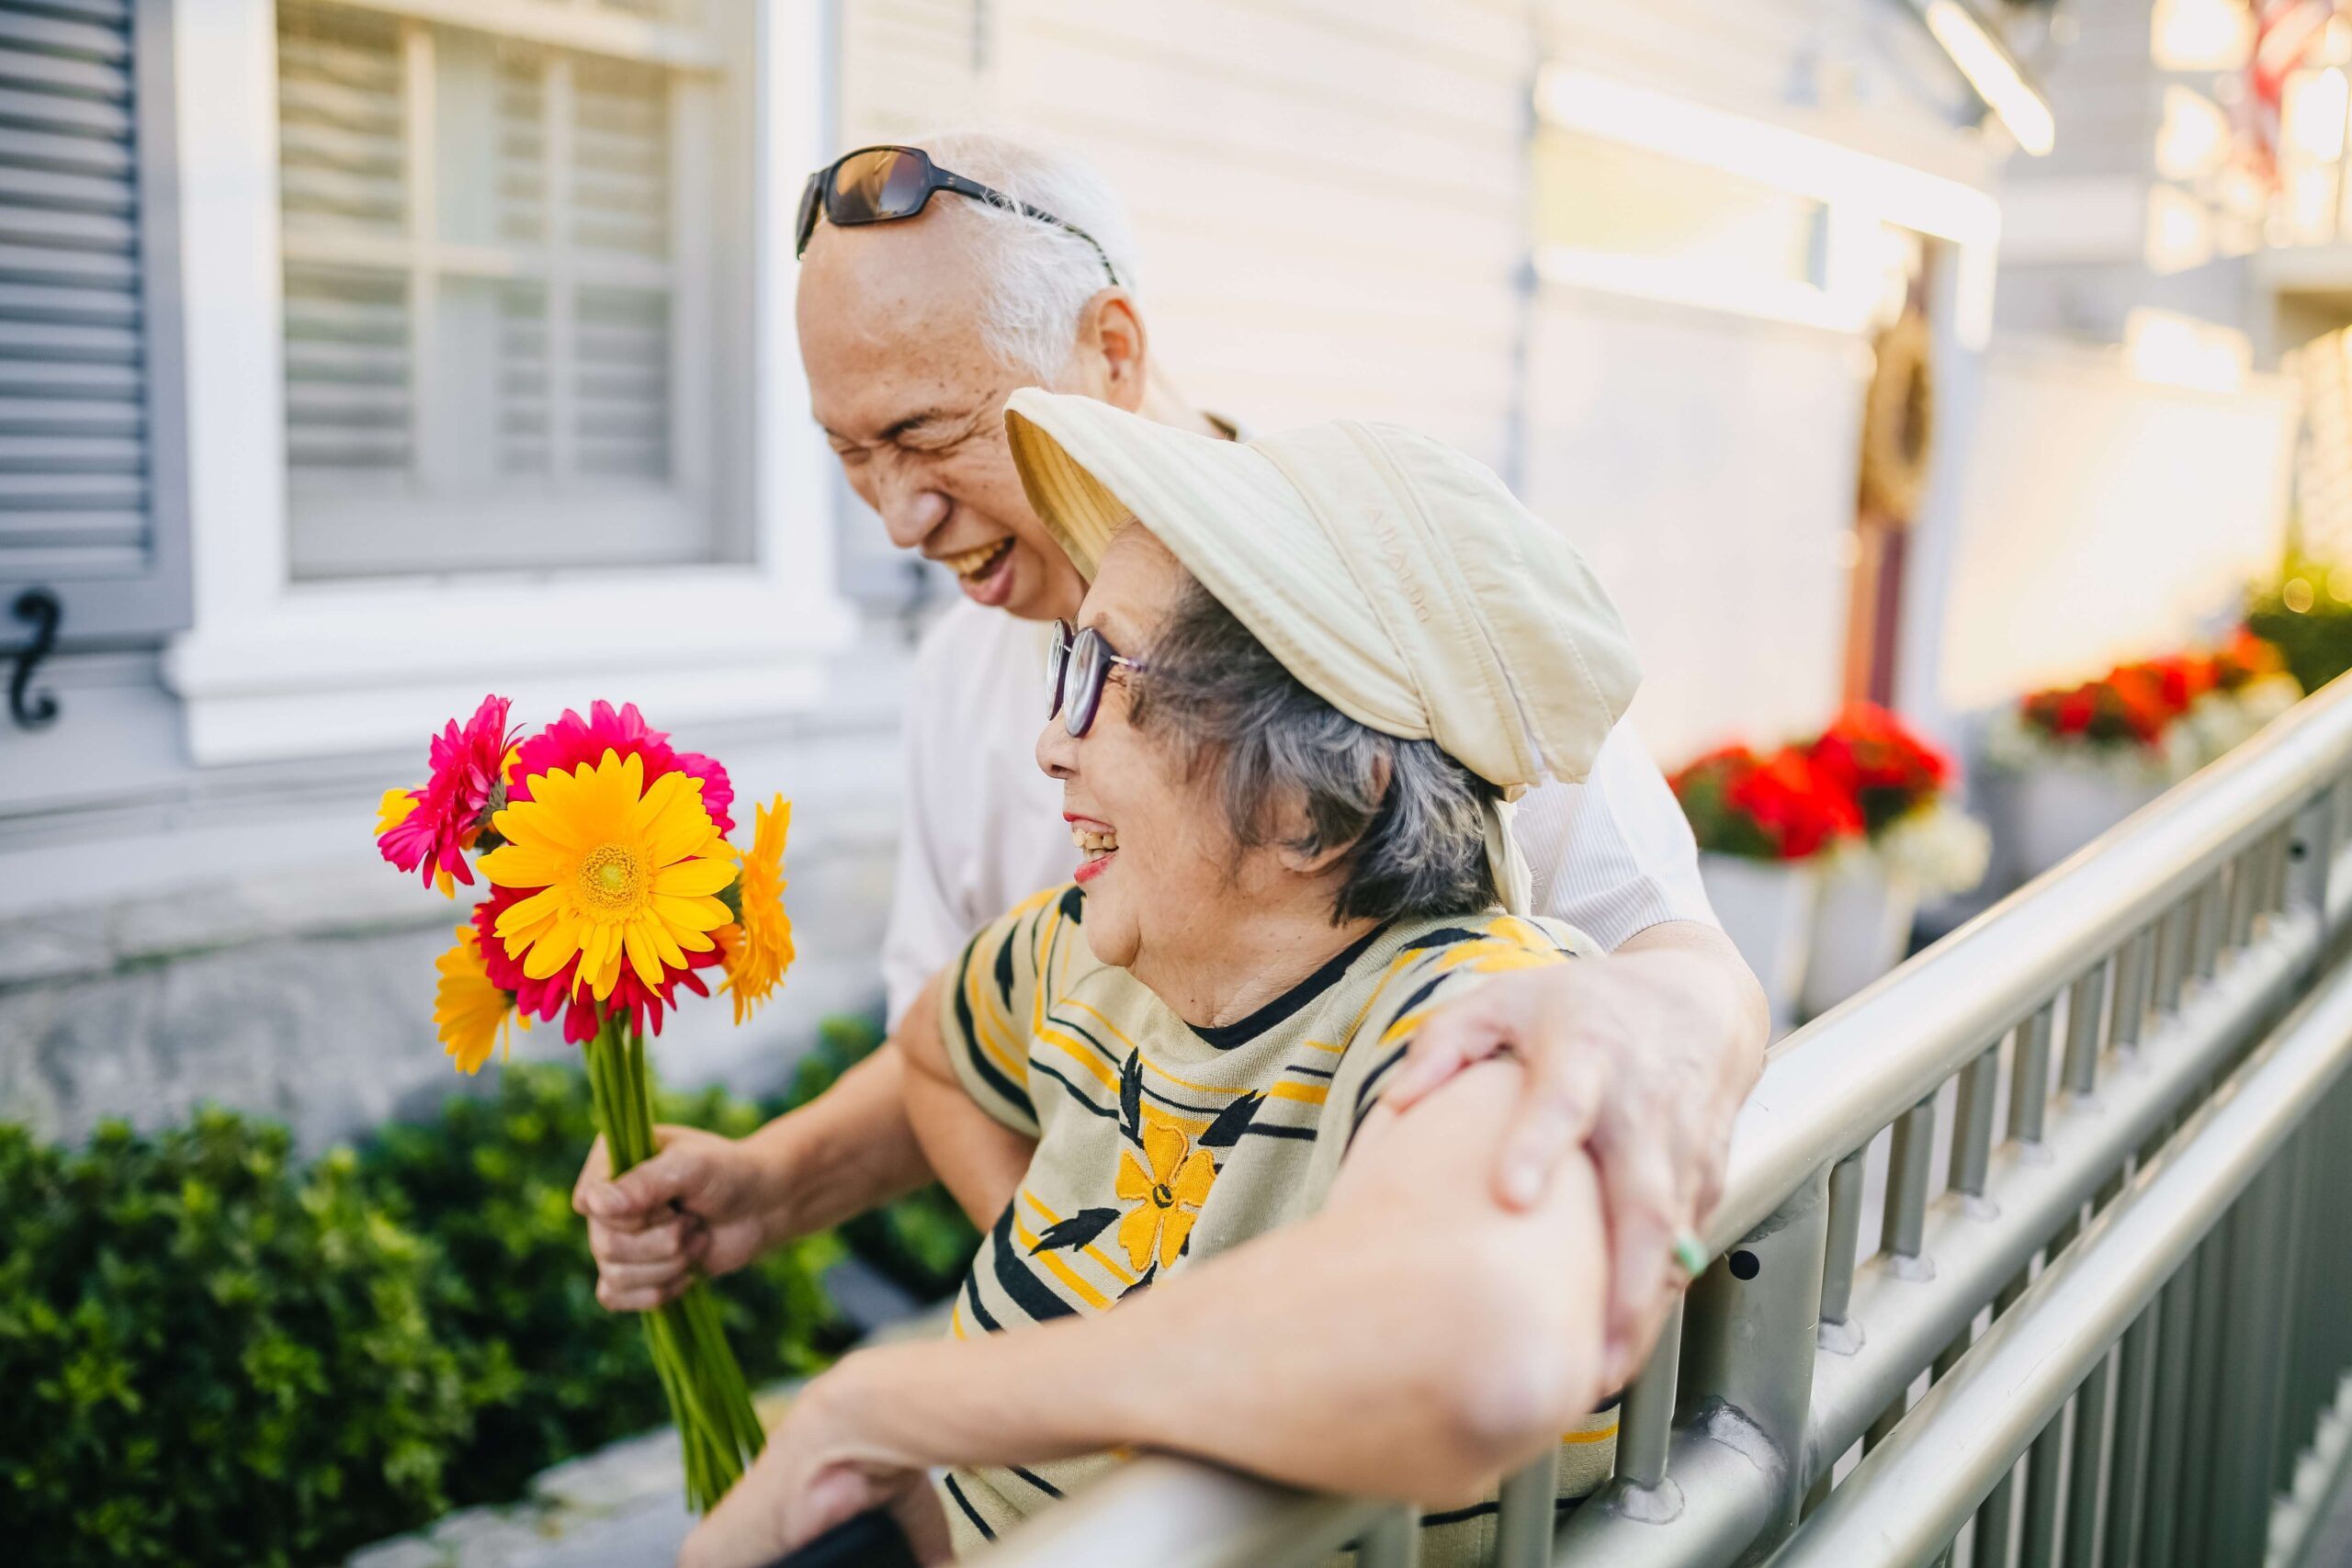 Fewer Relationship Issues Seen in Longer Marriages as Partners Mellow